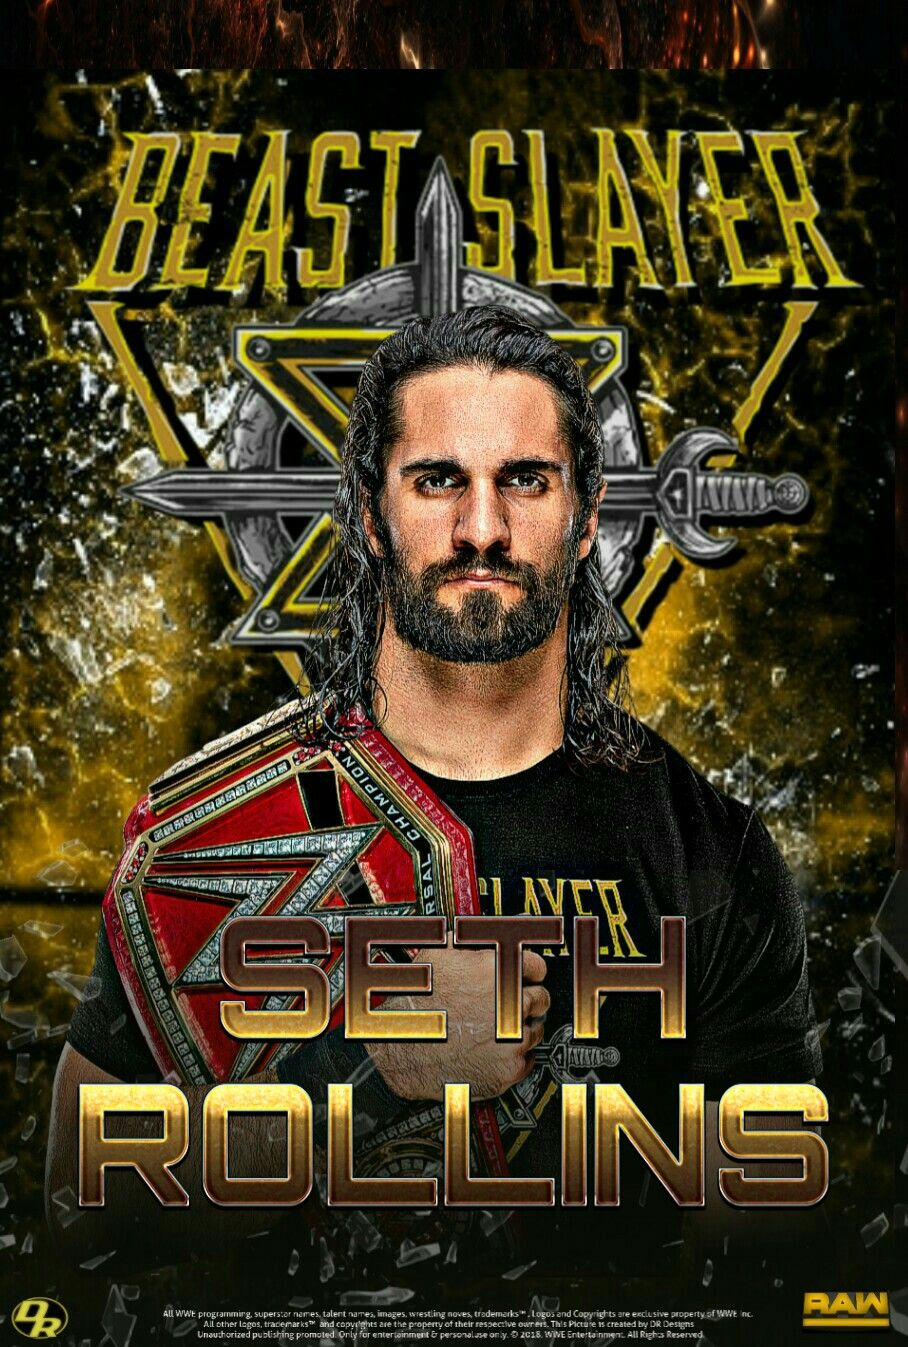 Pin By Zaid On Romanraines Wwe Seth Rollins Wwe Superstar Roman